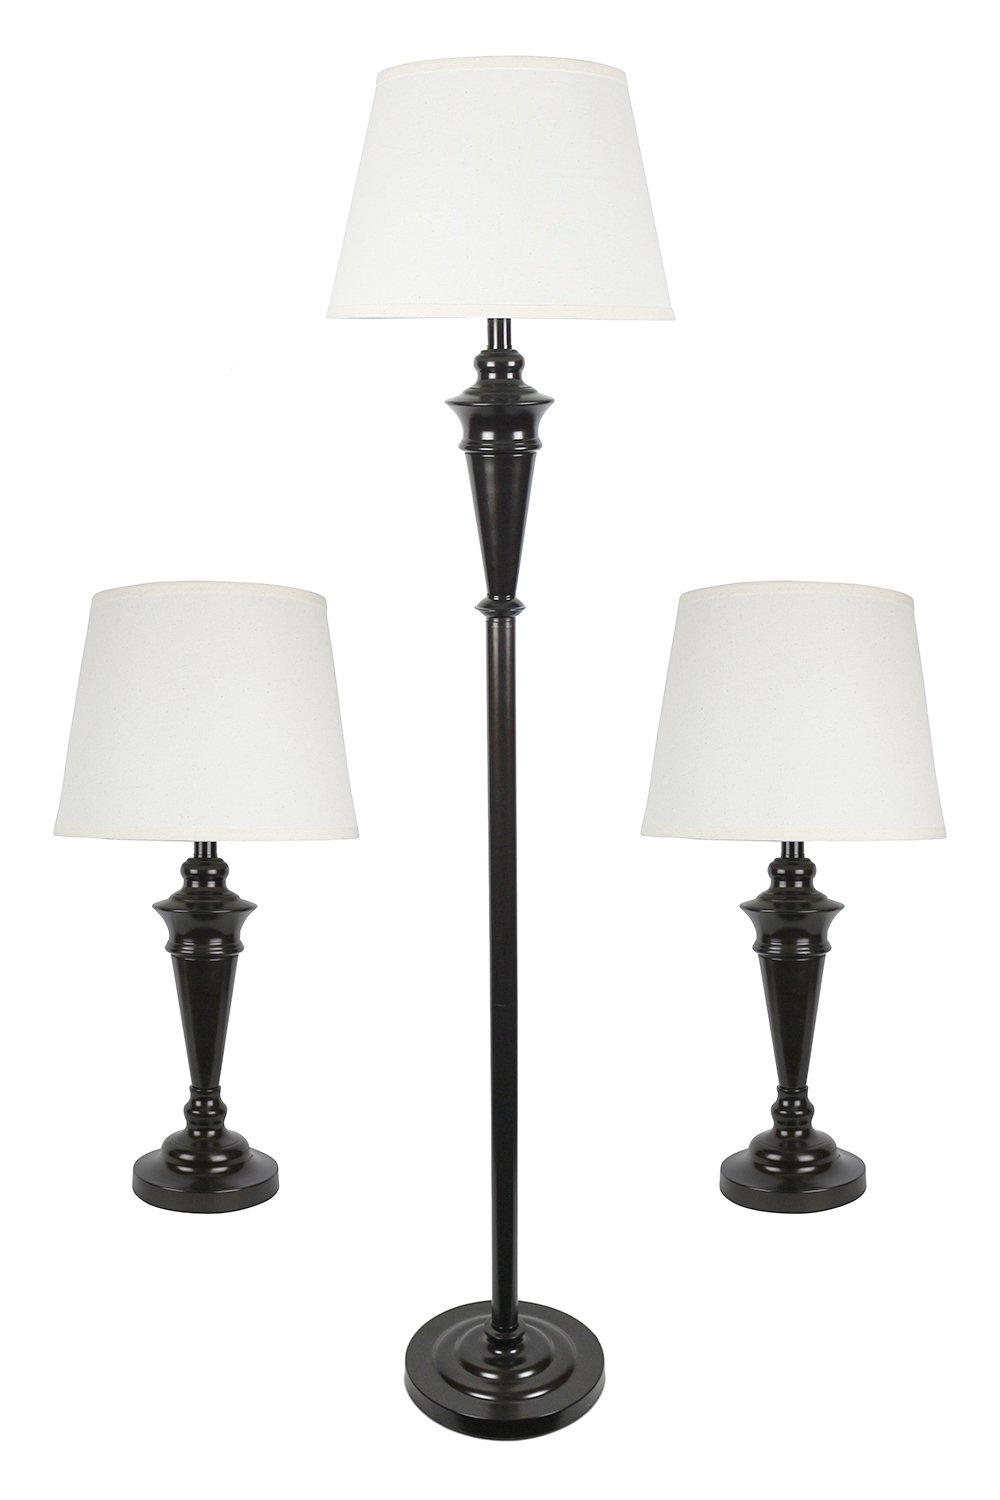 Urbanest Peterson Set of 3 Table and Floor Lamps, Oil-rubbed Bronze with Cream Linen Shades